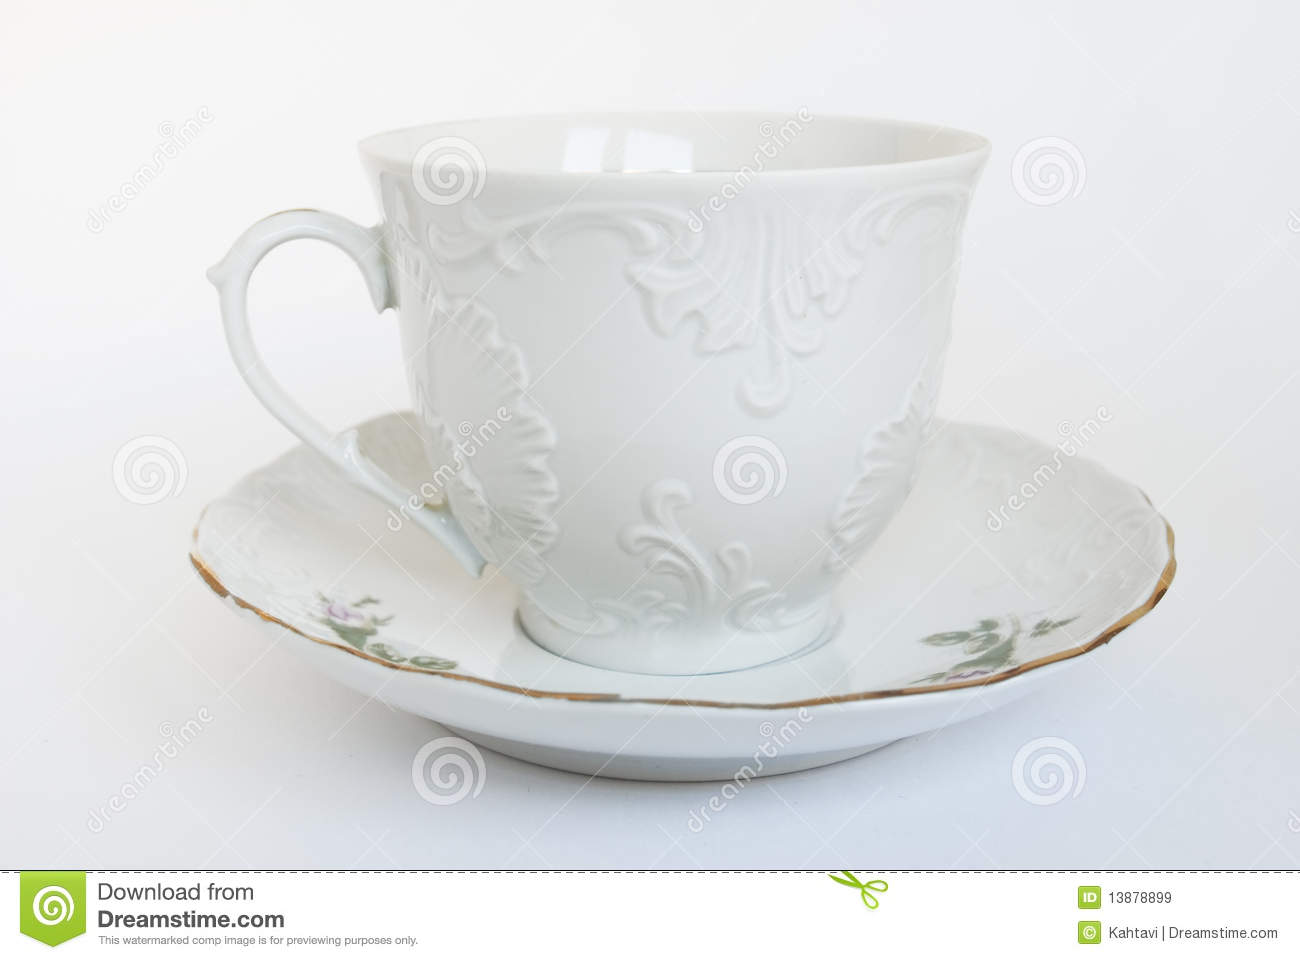 White Cup And Saucer Stock Image Image Of Drink Relief 13878899